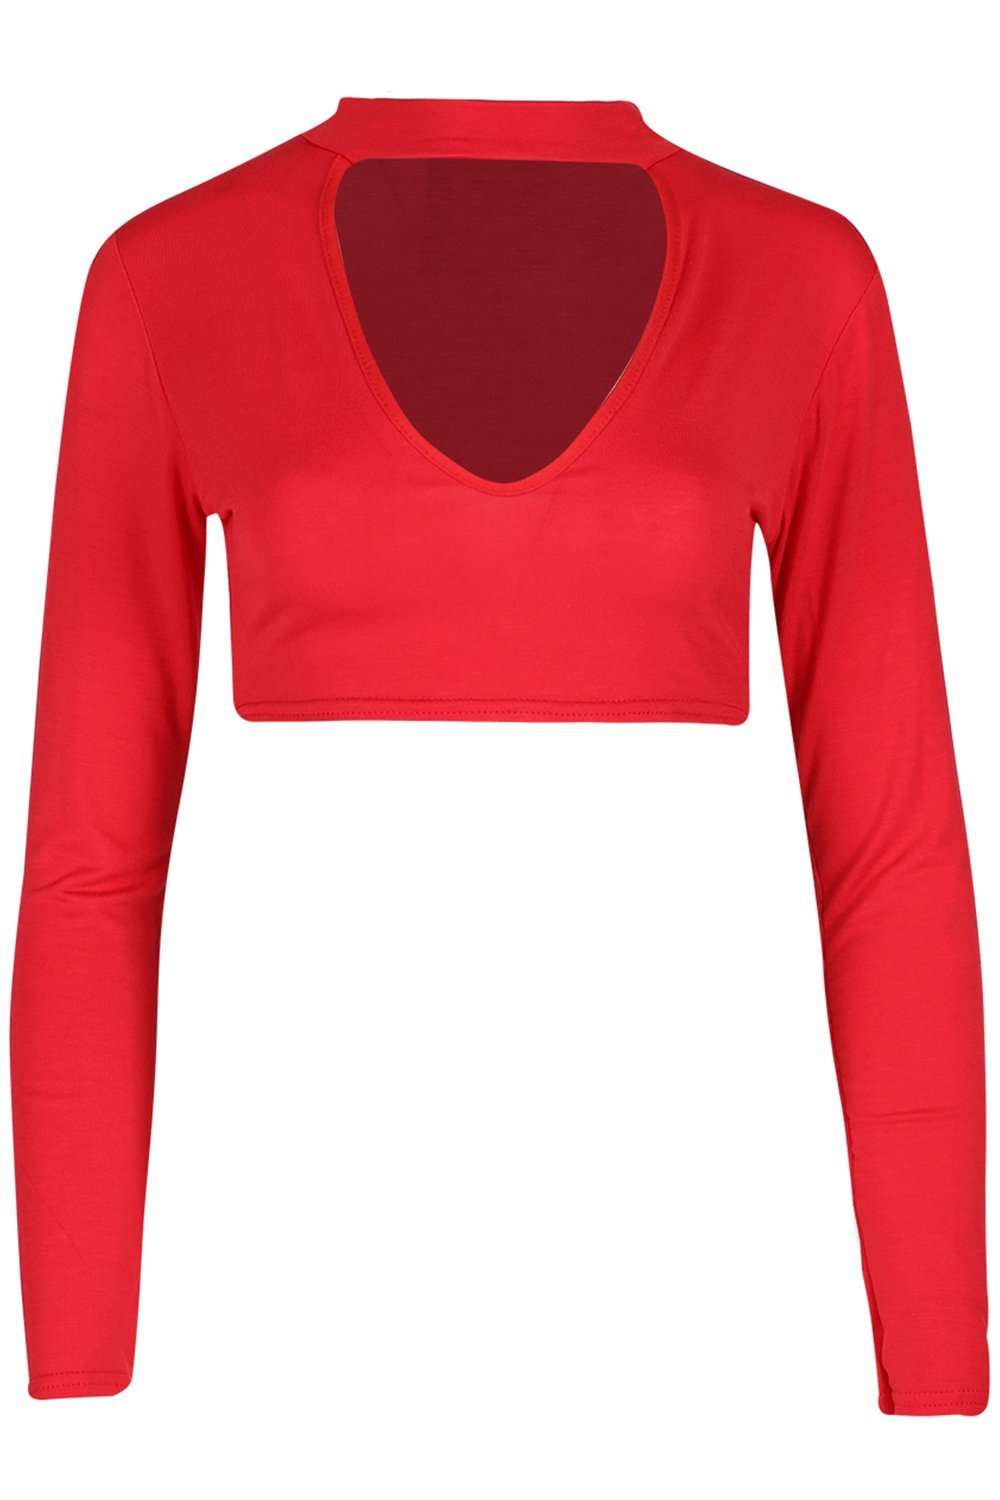 Dassia Long Sleeve Choker Neck Crop Top - bejealous-com